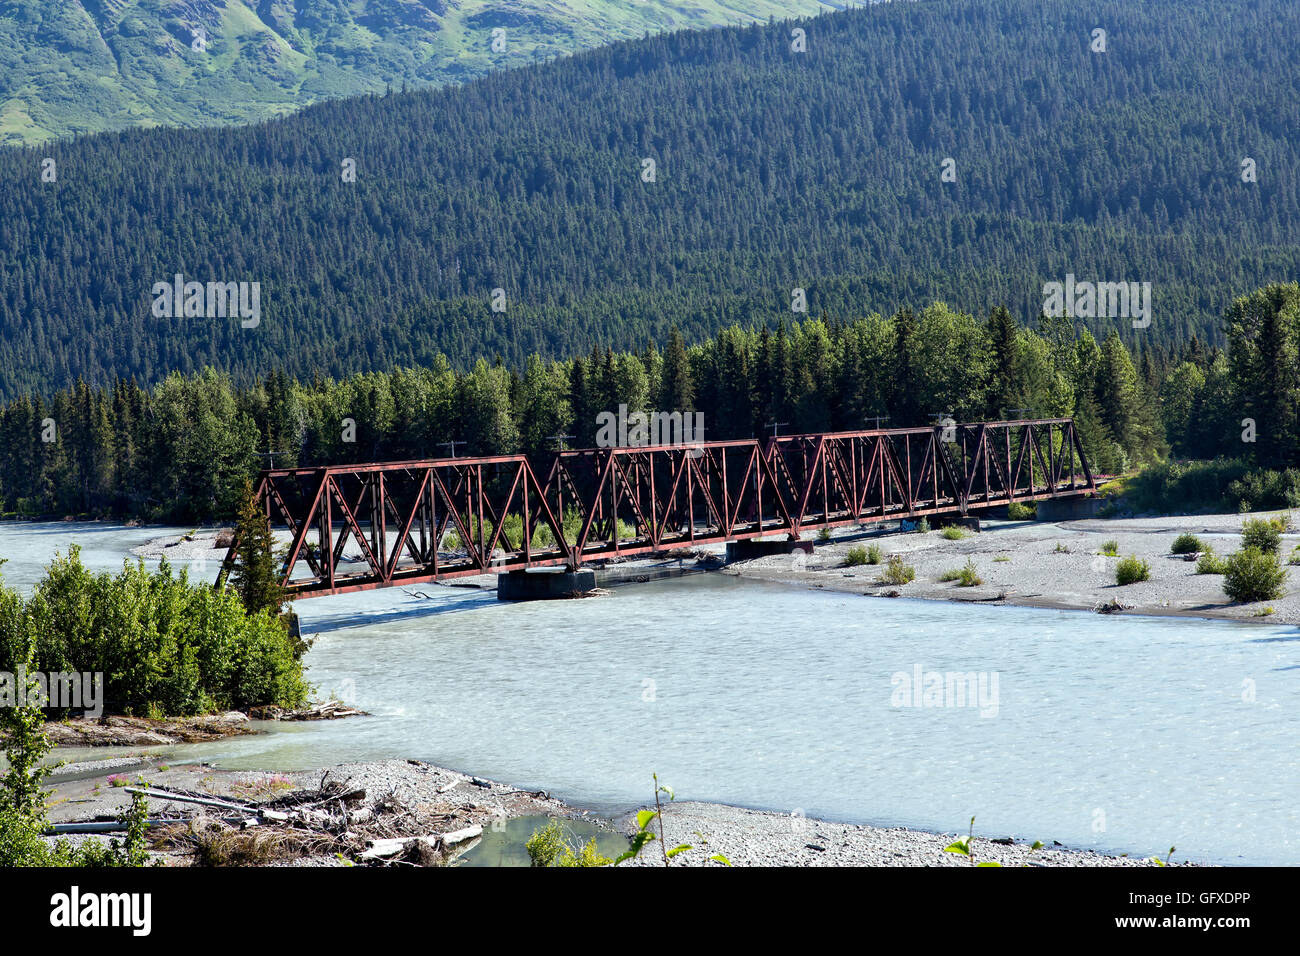 Classic Railroad trestle crossing glacier-fed Snow river. - Stock Image